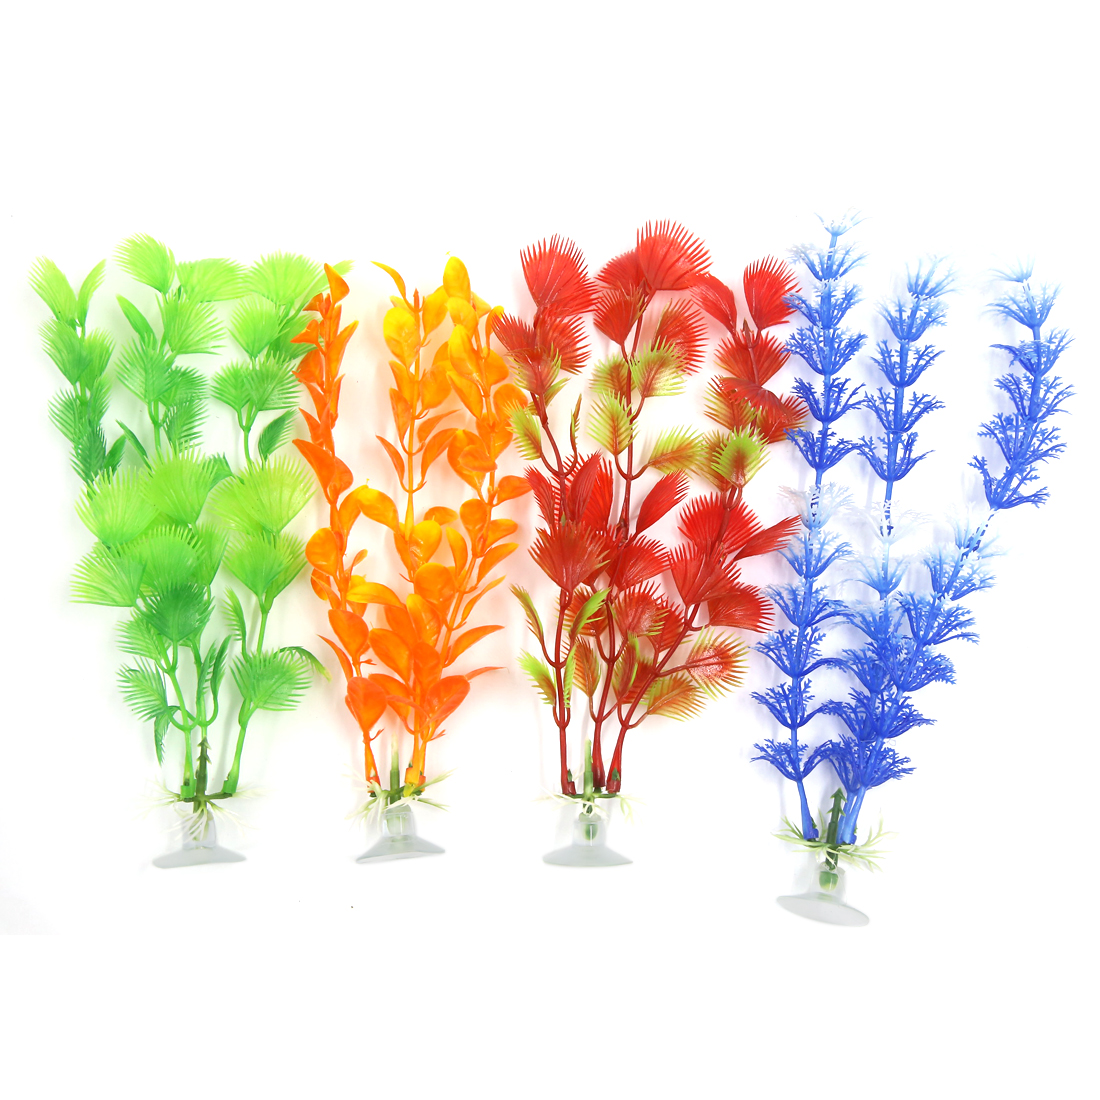 4 Pcs Aqua Fish Tank Ornament Plastic Decoration Plant With Suction Cup